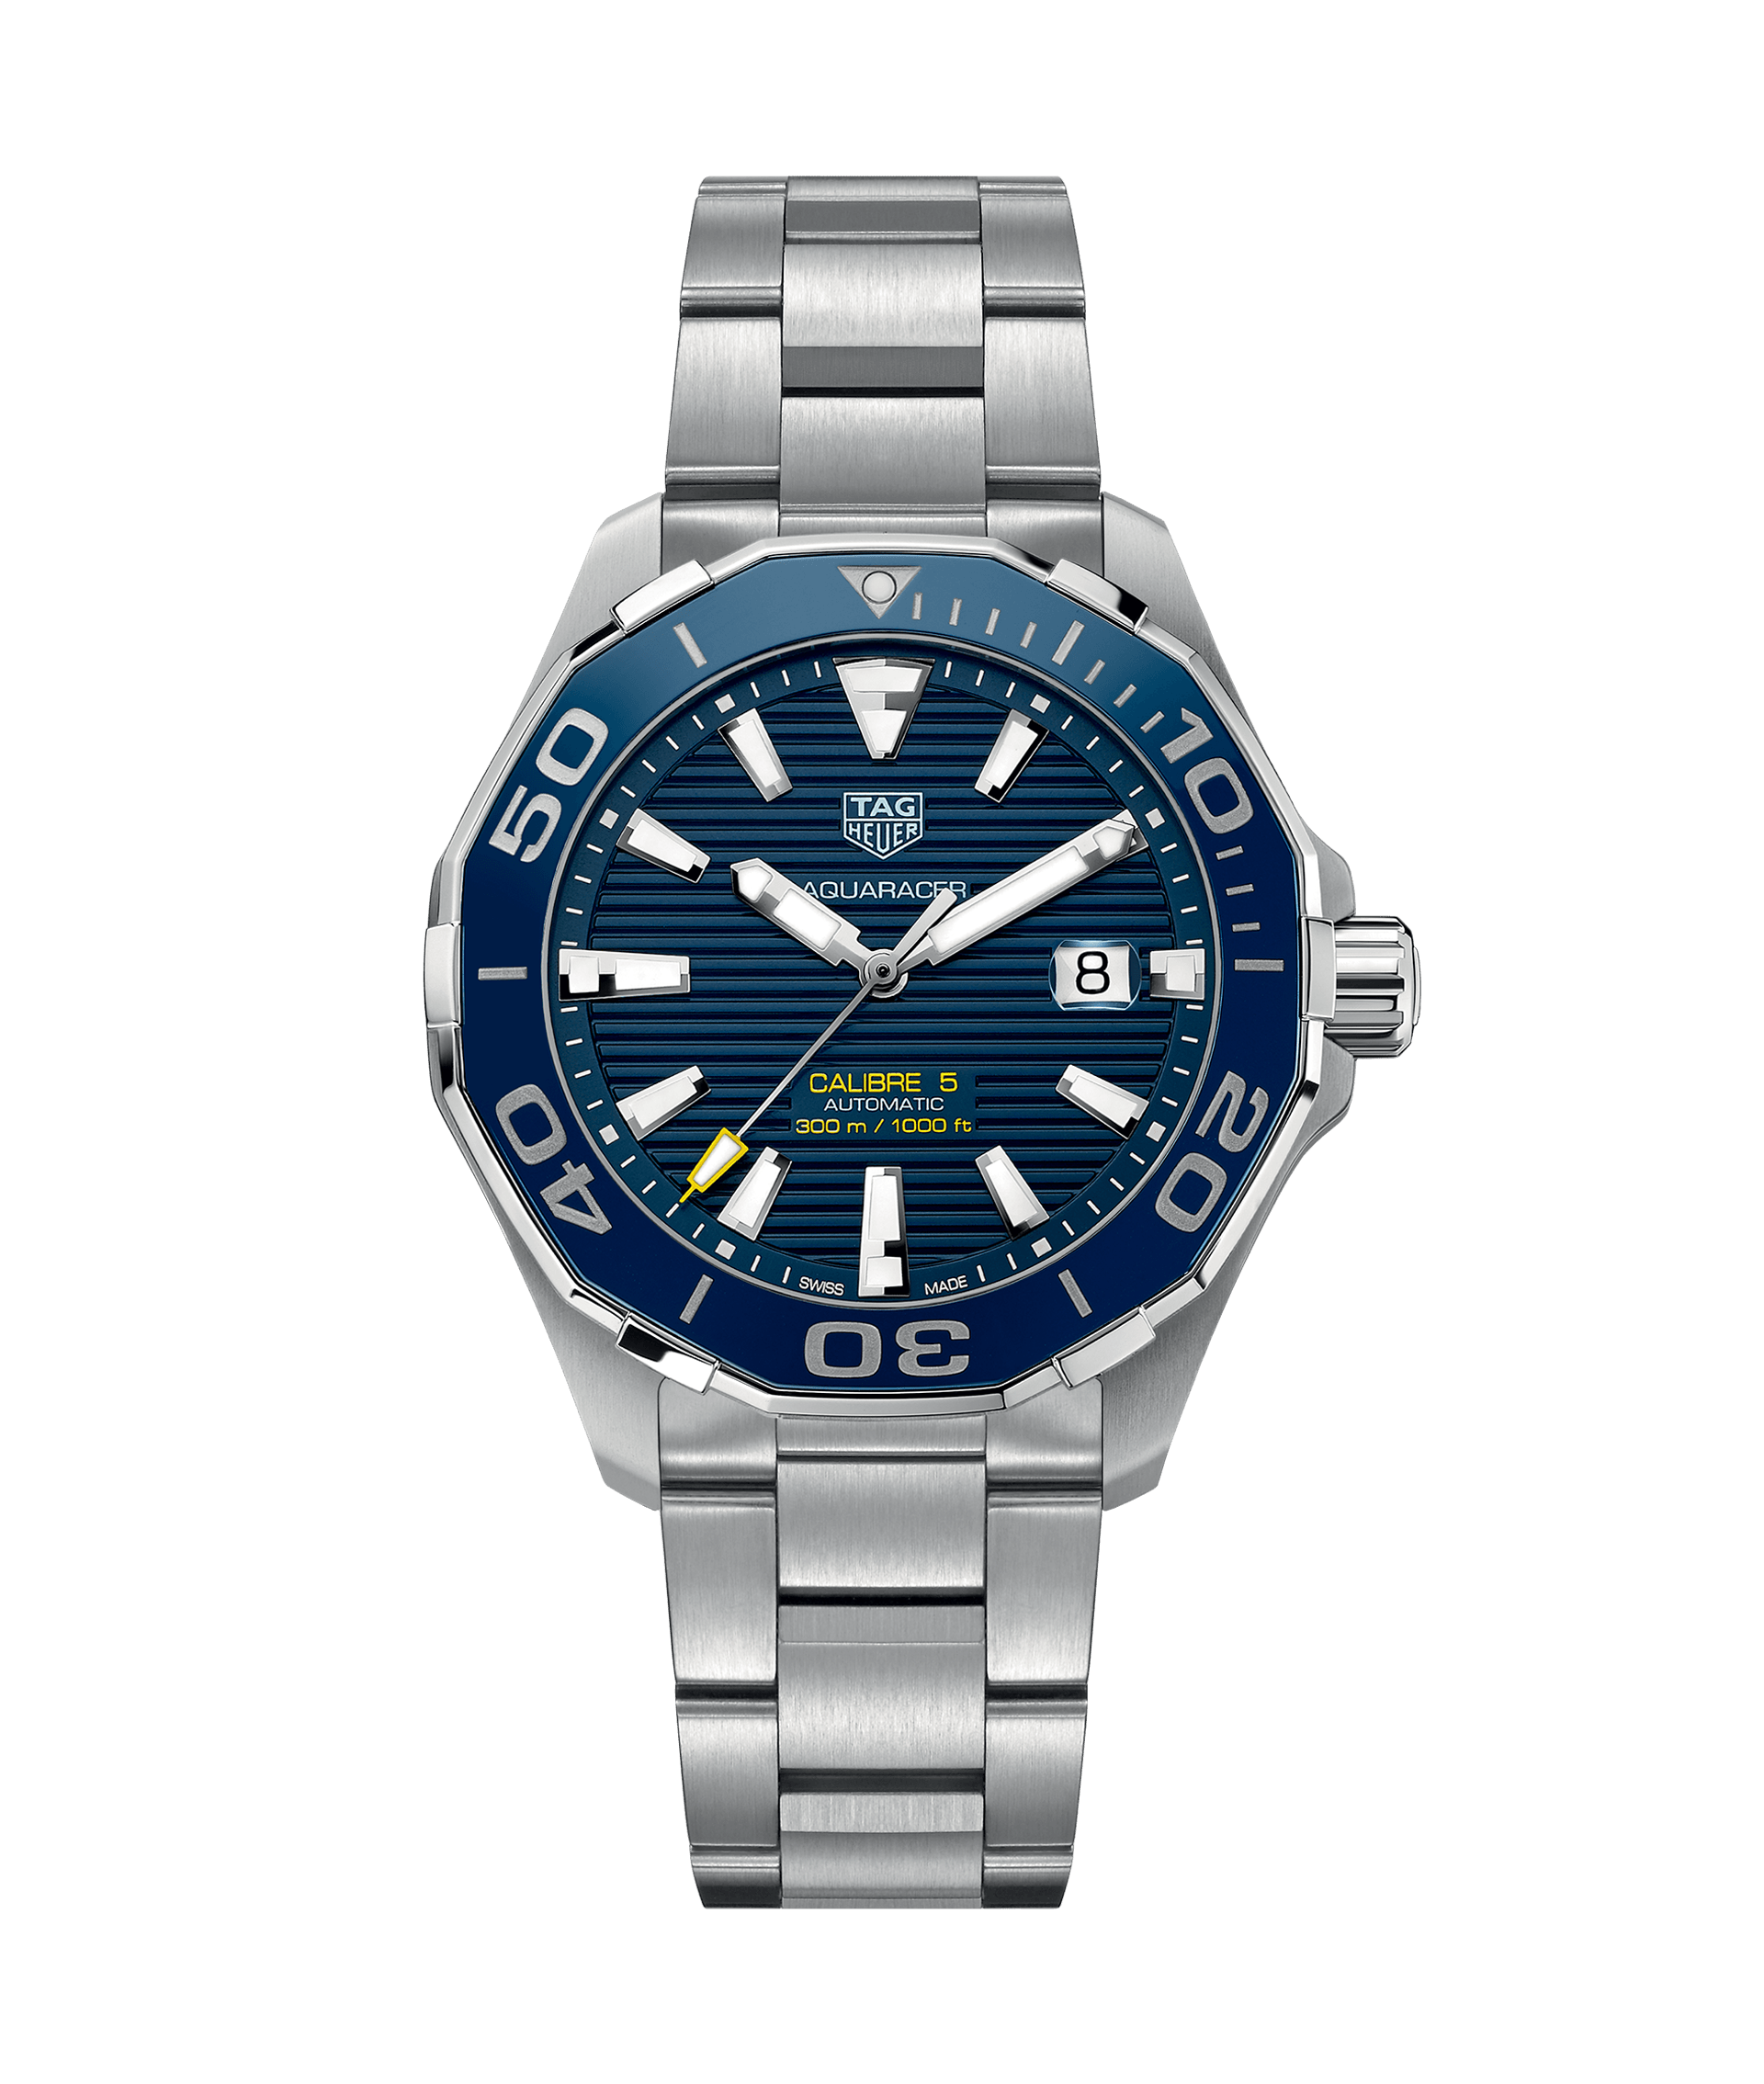 b1a91ef07483 Tag Heuer Aquaracer 43mm Steel Calibre 5 Watch with Blue Detailing